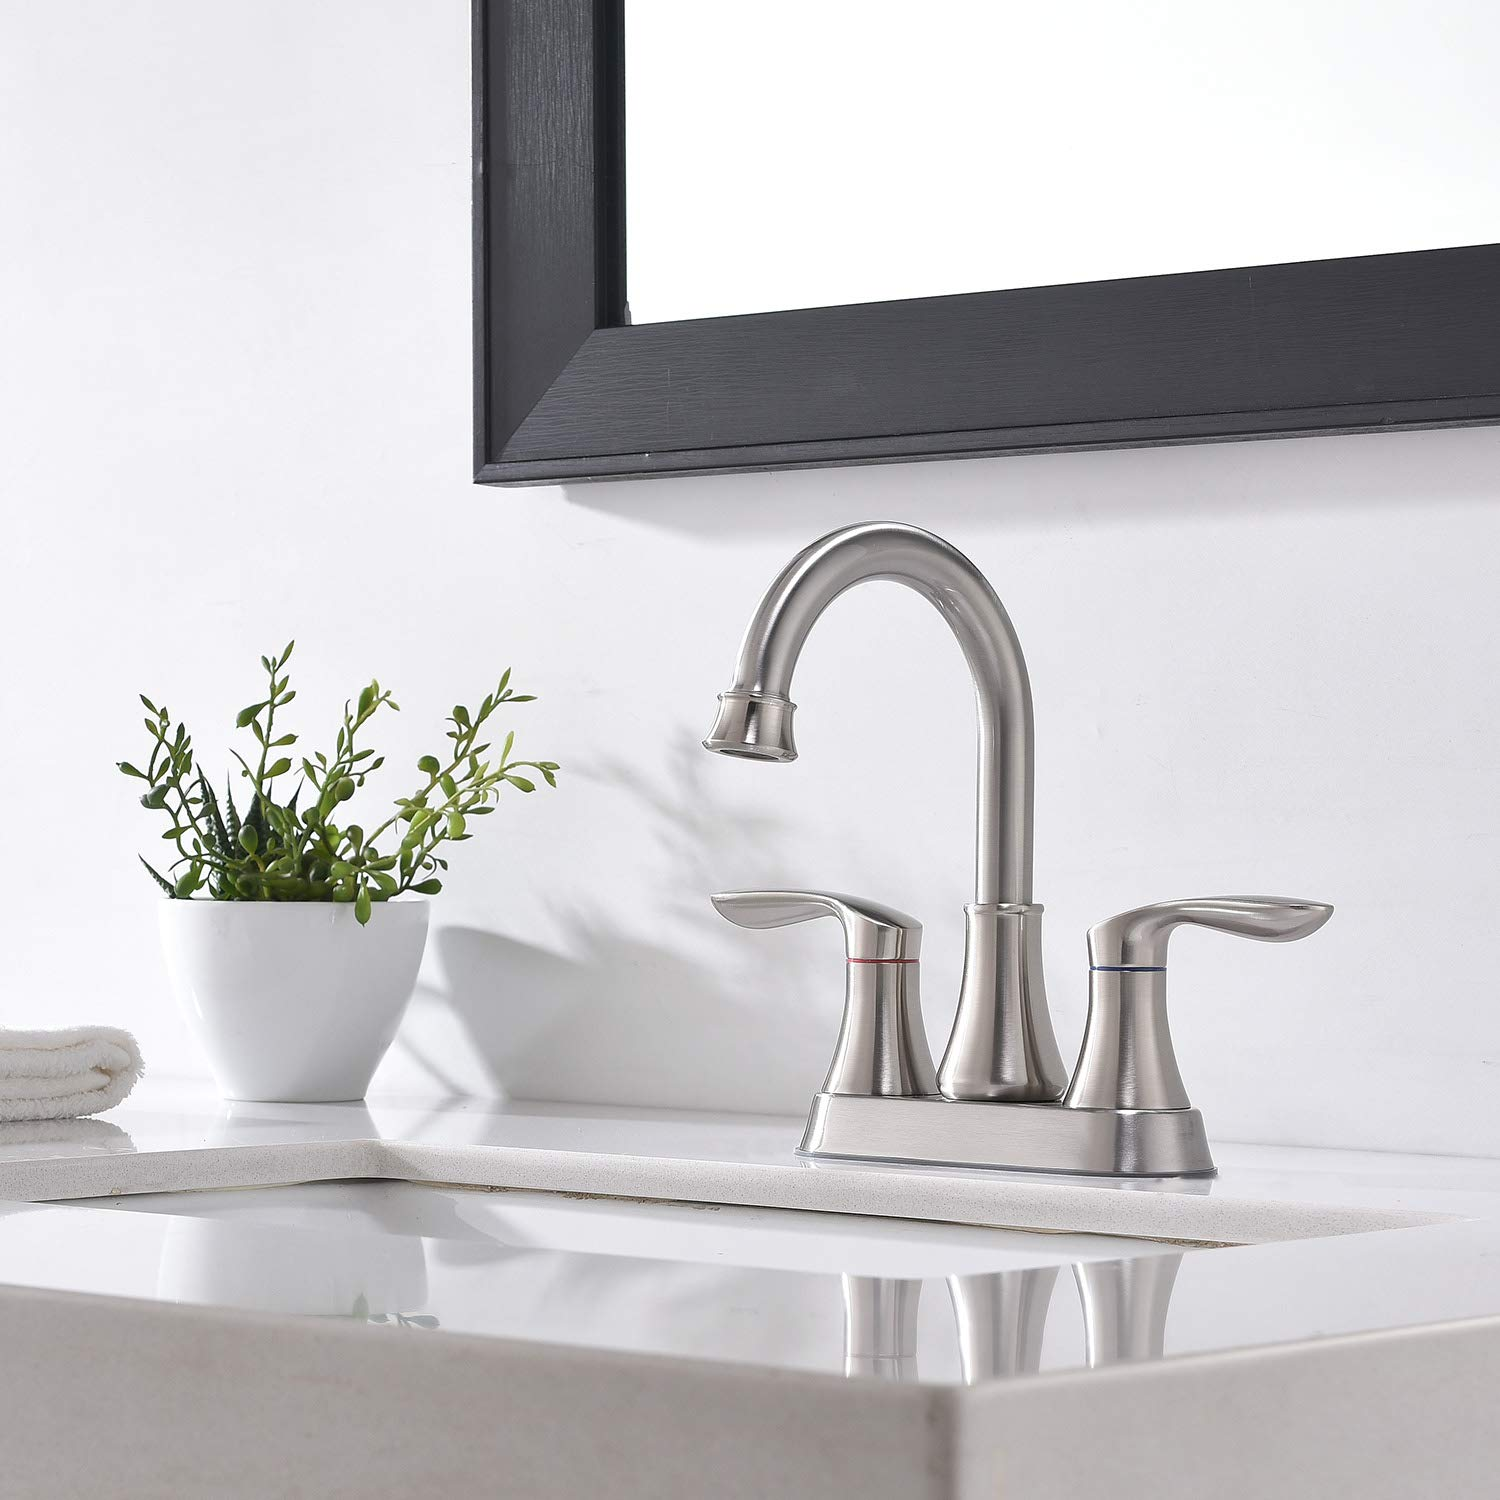 Friho Lead-Free Modern Commercial Two Handle Oil Rubbed Bronze Bathroom Faucet,Bathroom Vanity Sink Faucets with Drain Stopper and Water Hoses